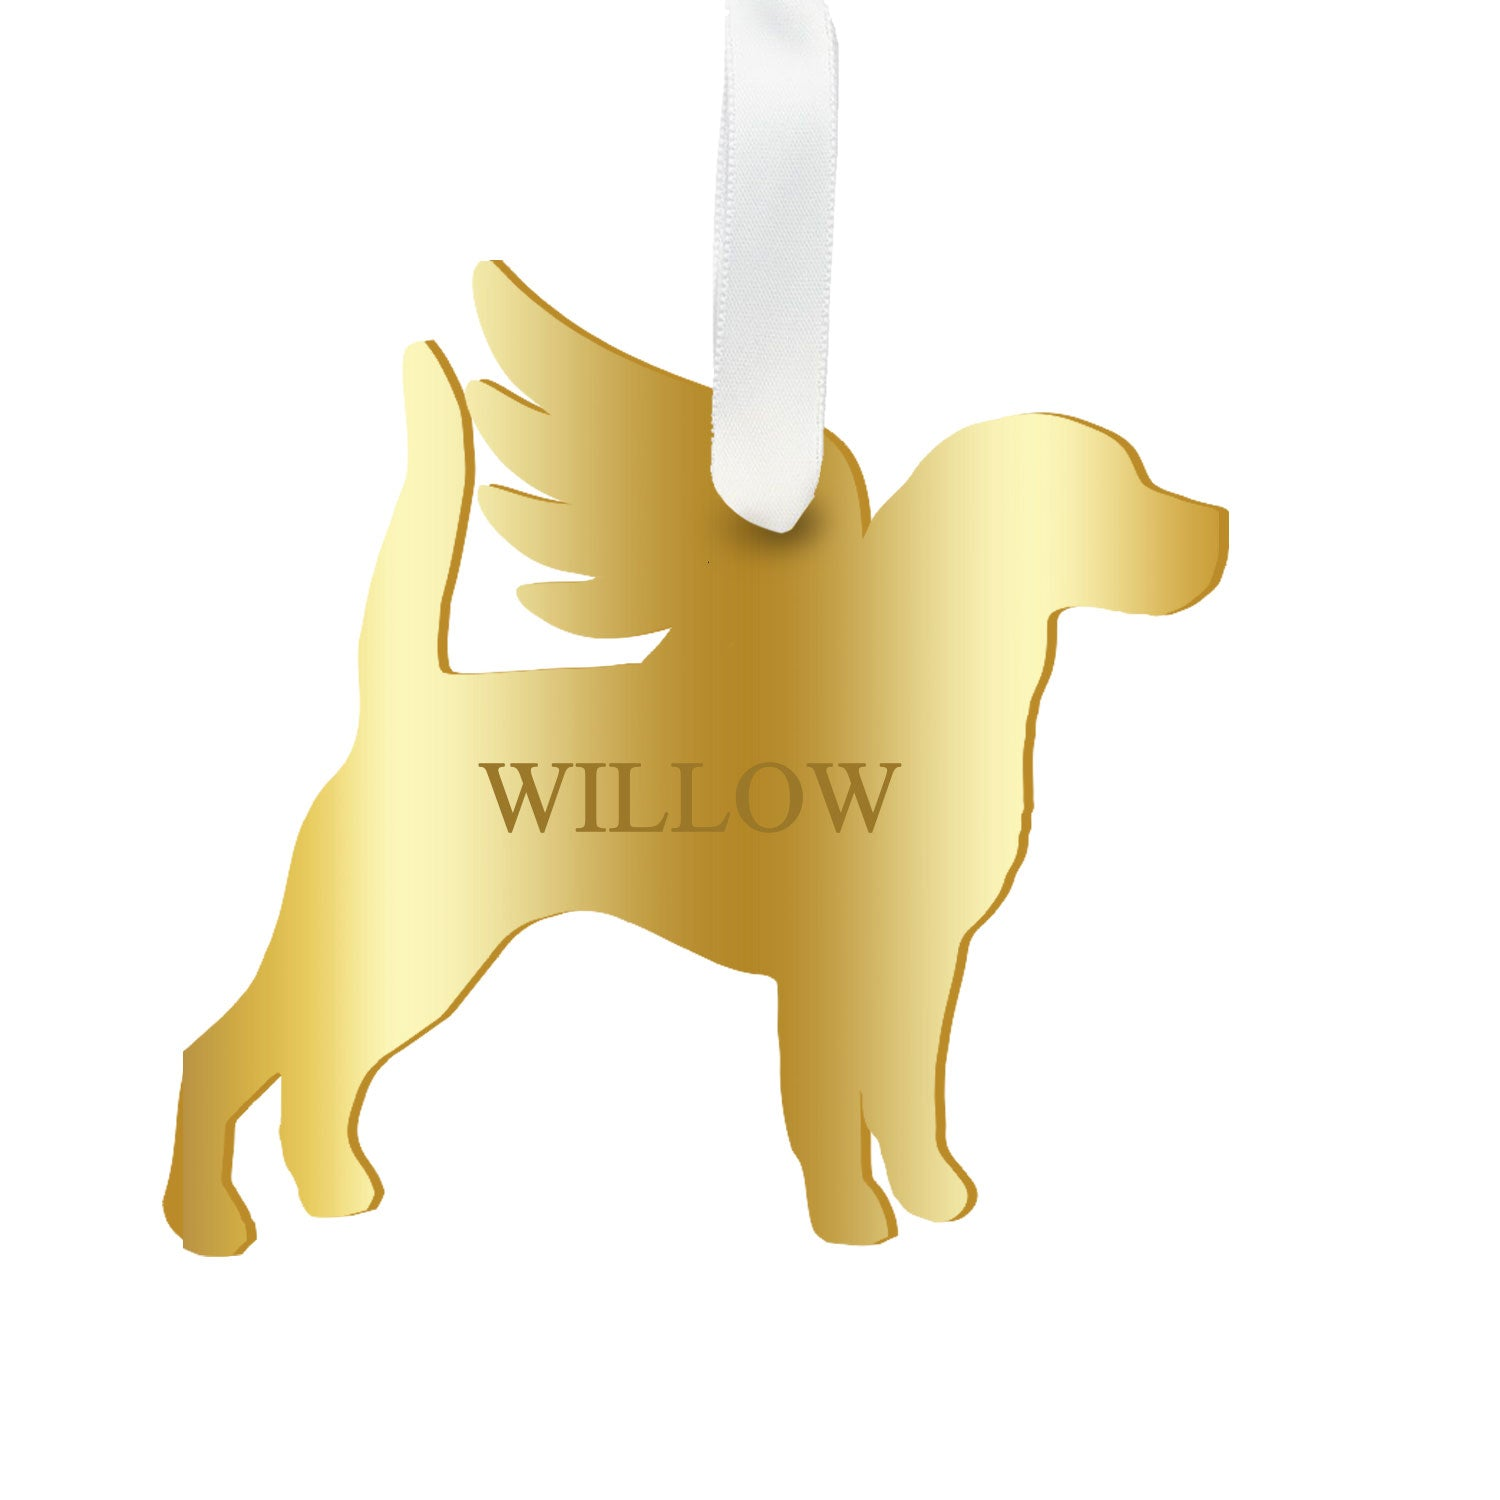 Moon and Lola - Personalized Angel Beagle Ornament with wings in mirrored gold